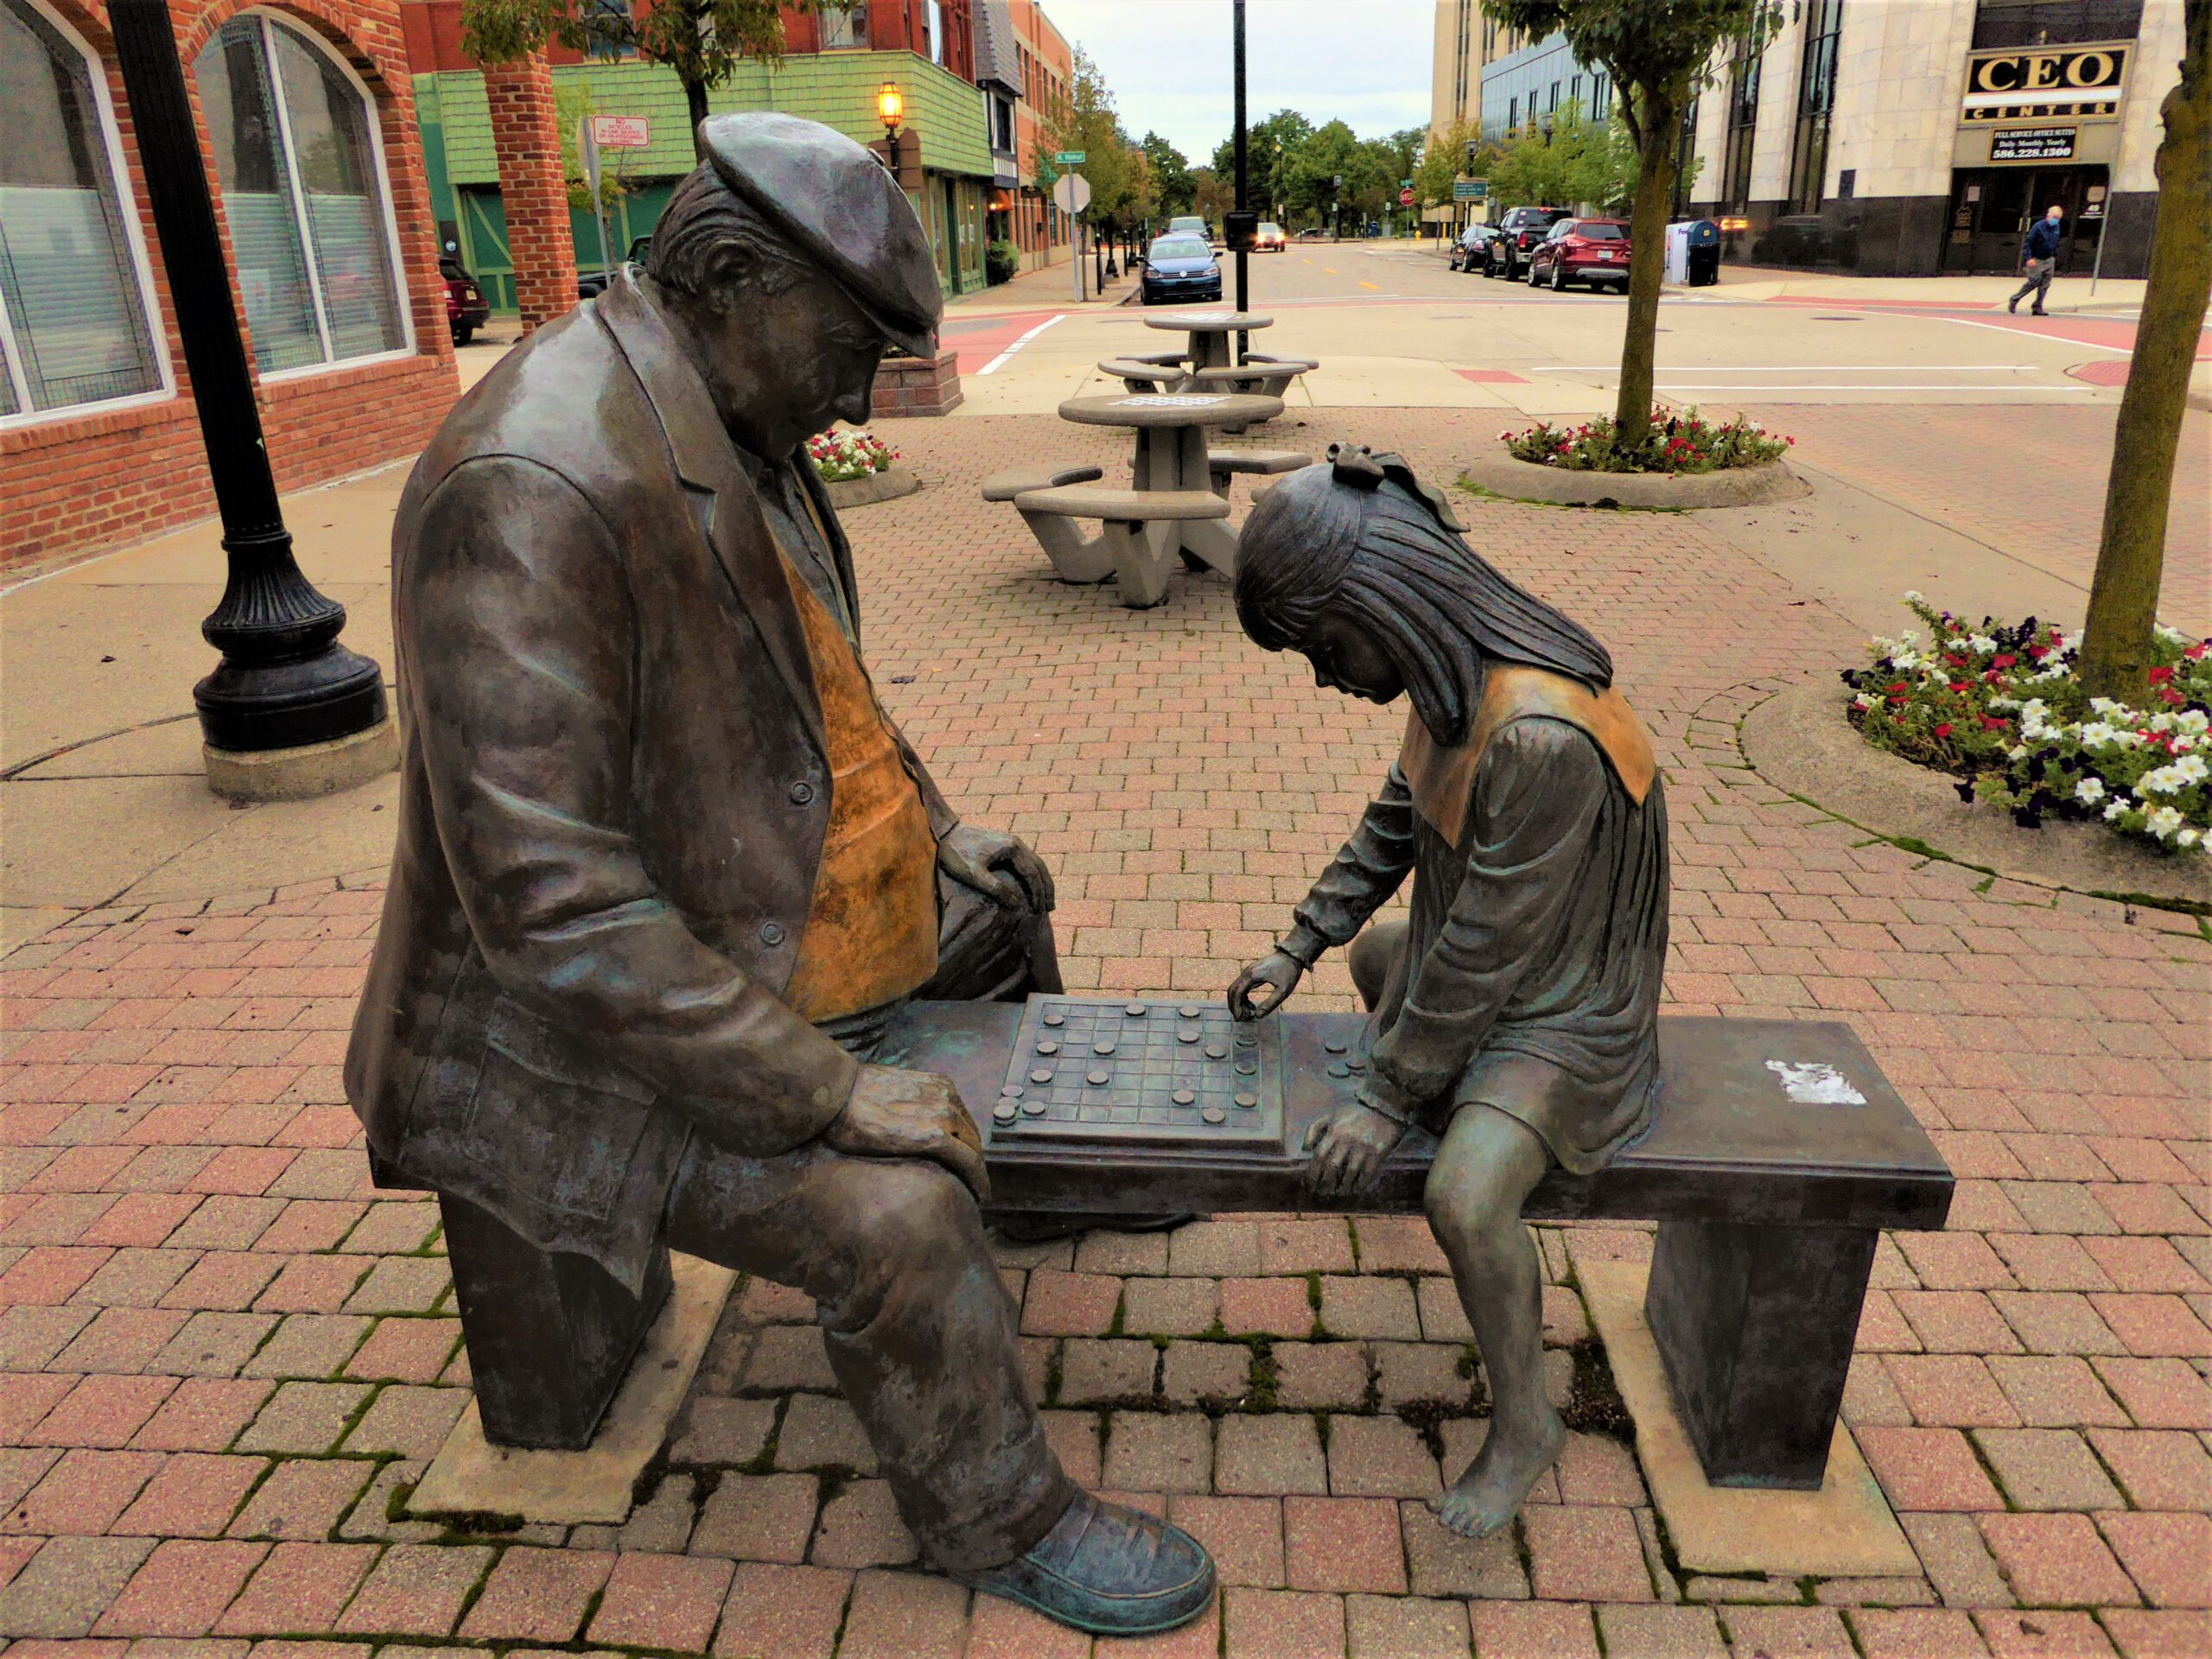 Photo of a sculpture of an older man playing checkers with a young girl, both are sitting on a bench.